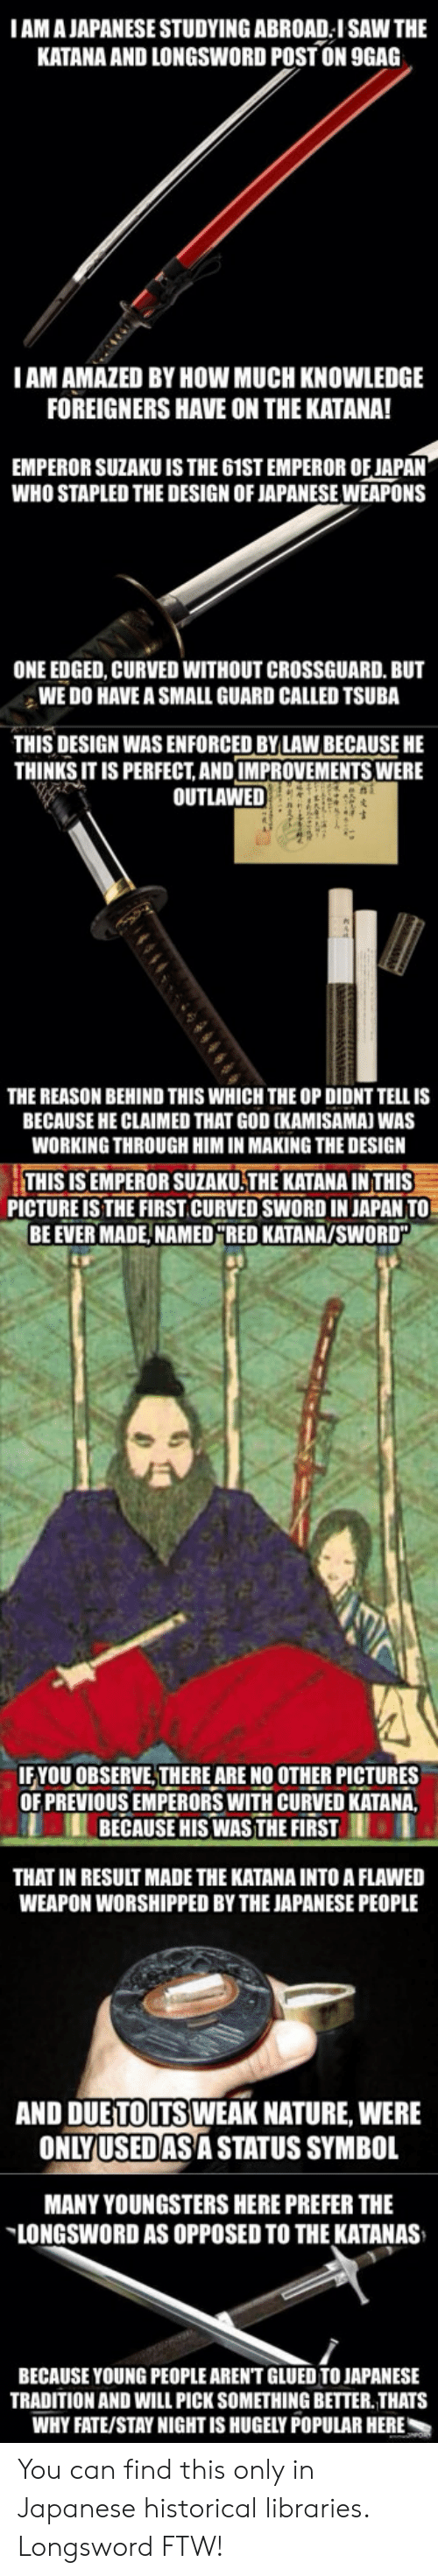 Crossguard: IAM A JAPANESE STUDYING ABROAD I SAW THE  KATANA AND LONGSWORD POSTON  9GAG  IAM AMAZED BY HOW MUCH KNOWLEDGE  FOREIGNERS HAVE ON THE KATANA!  EMPEROR SUZAKU IS THE 61ST EMPEROR OF JAPAN  WHO STAPLED THE DESIGN OF JAPANESE WEAPONS  ONE EDGED, CURVED WITHOUT CROSSGUARD. BUT  WE DO HAVE A SMALL GUARD CALLED TSUBA  THIS DESIGN WAS ENFORCED BYLAW BECAUSE HE  THINKS IT IS PERFECT,AND IMPROVEMENTS WERE  OUTLAWED  THE REASON BEHIND THIS WHICH THE OP DIDNT TELL IS  BECAUSE HE CLAIMED THAT GOD (KAMISAMAJ WAS  WORKING THROUGH HIM IN MAKING THE DESIGN  THIS IS EMPEROR SUZAKU THE KATANA IN THIS-  BE EVER MADE,NAMEDRED KATANAYSWORD  PICTURE IS THE FIRST CURVED SWORD IN JAPAN TO  YOU OBSERVE,THERE ARE NO OTHER PICTURES  OF PREVIOUS EMPERORS WITH CURVED KATA  BECAUSE HIS WASTHE FIRST  THAT IN RESULT MADE THE KATANA INTO A FLAWED  WEAPON WORSHIPPED BY THE JAPANESE PEOPLE  AND DUETOUTS WEAK NATURE, WERE  ONLYUSEDAS A STATUS SYMBOL  MANY YOUNGSTERS HERE PREFER THE  LONGSWORD AS OPPOSED TO THE KATANAS  BECAUSE YOUNG PEOPLE AREN'T GLUED TO JAPANESE  TRADITION AND WILL PICK SOMETHING BETTER. THATS  WHY FATE/STAY NIGHT IS HUGELY POPULAR HERE You can find this only in Japanese historical libraries. Longsword FTW!